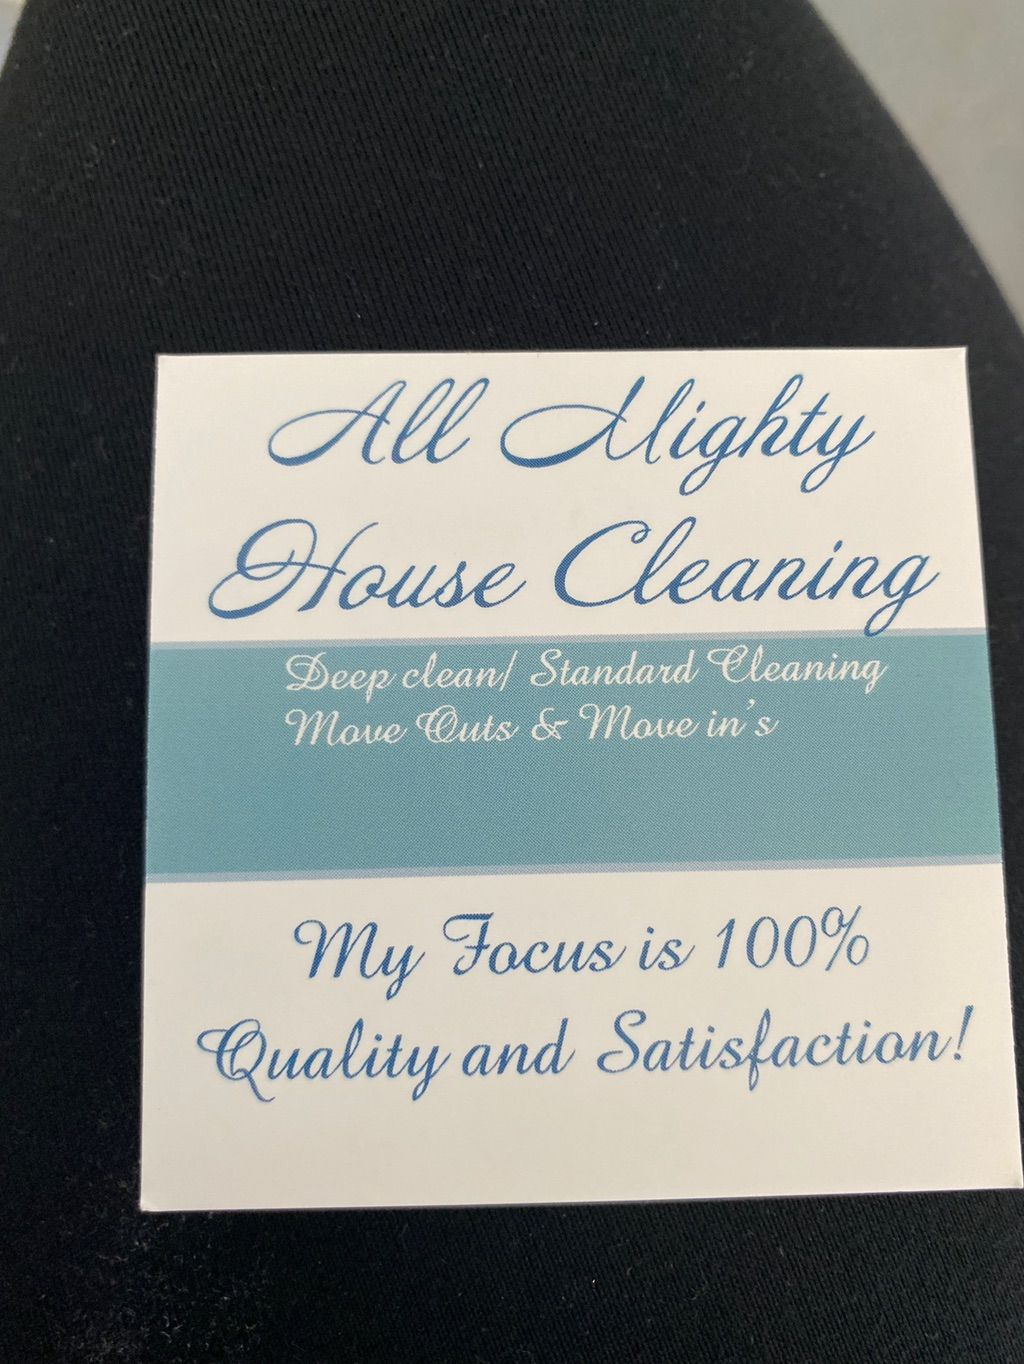 All Mighty House Cleaning!